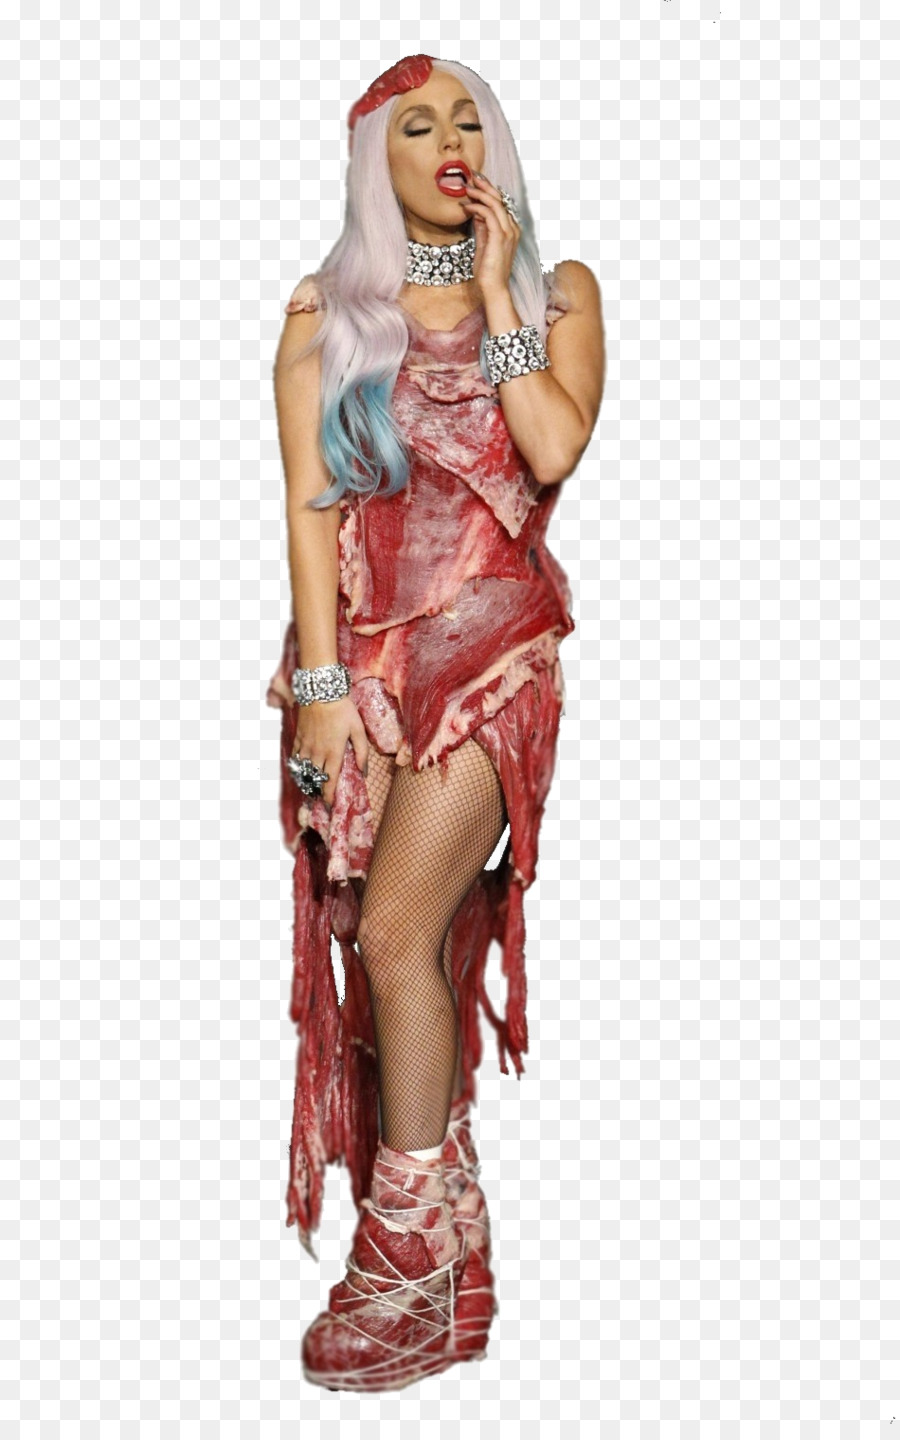 Lady Gagau0027s meat dress The Fame Christmas Tree Clip art - watching clipart